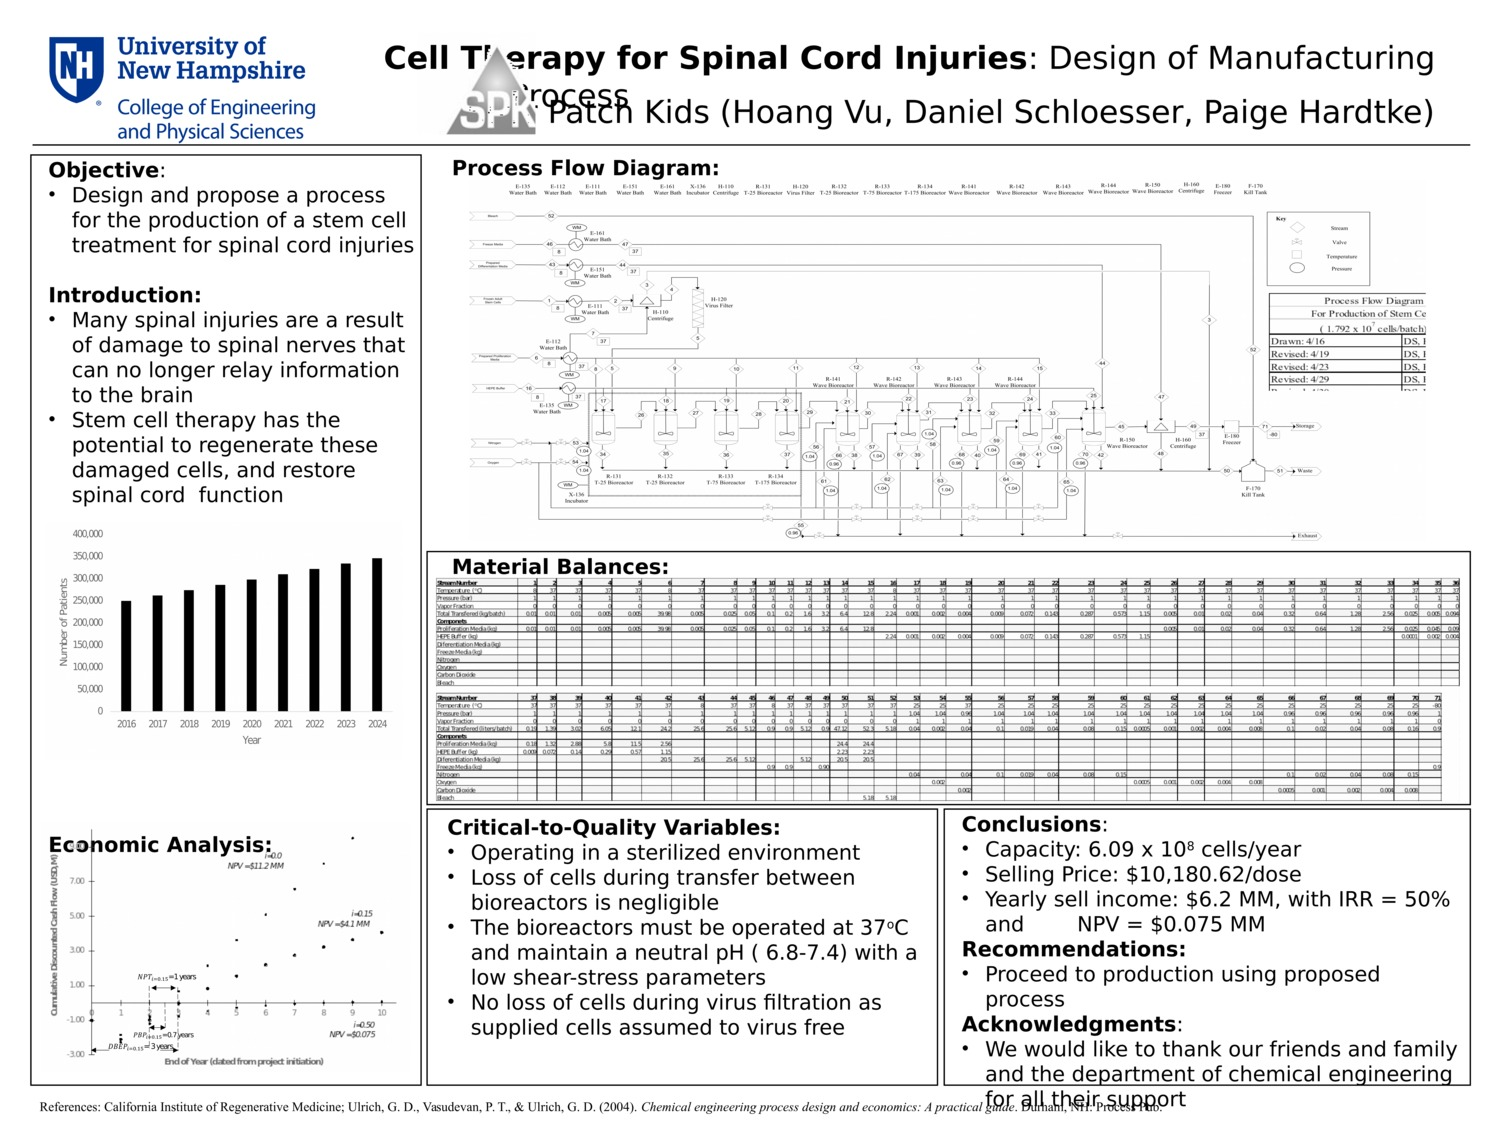 Cell Therapy For Spinal Cord Injuries by hin4